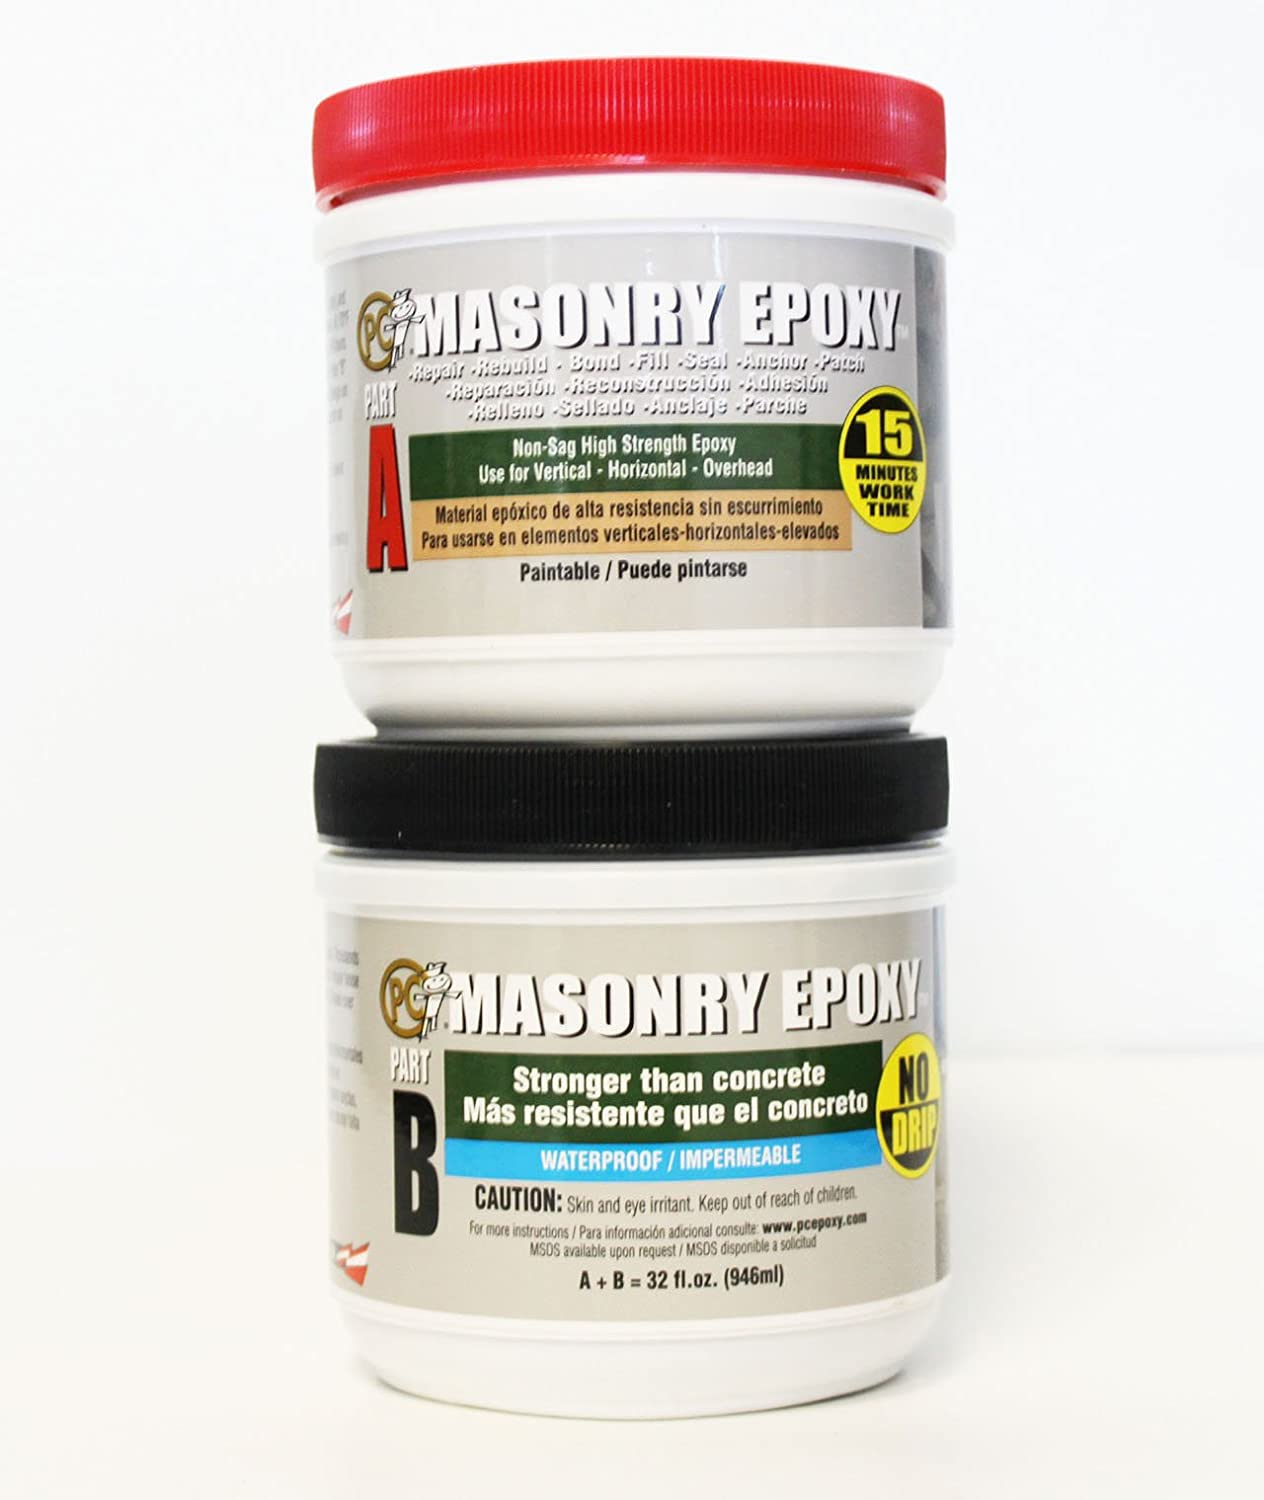 PC Products Max 76% OFF PC-Masonry Epoxy Adhesive Repair Two-Part 32 Max 52% OFF Paste